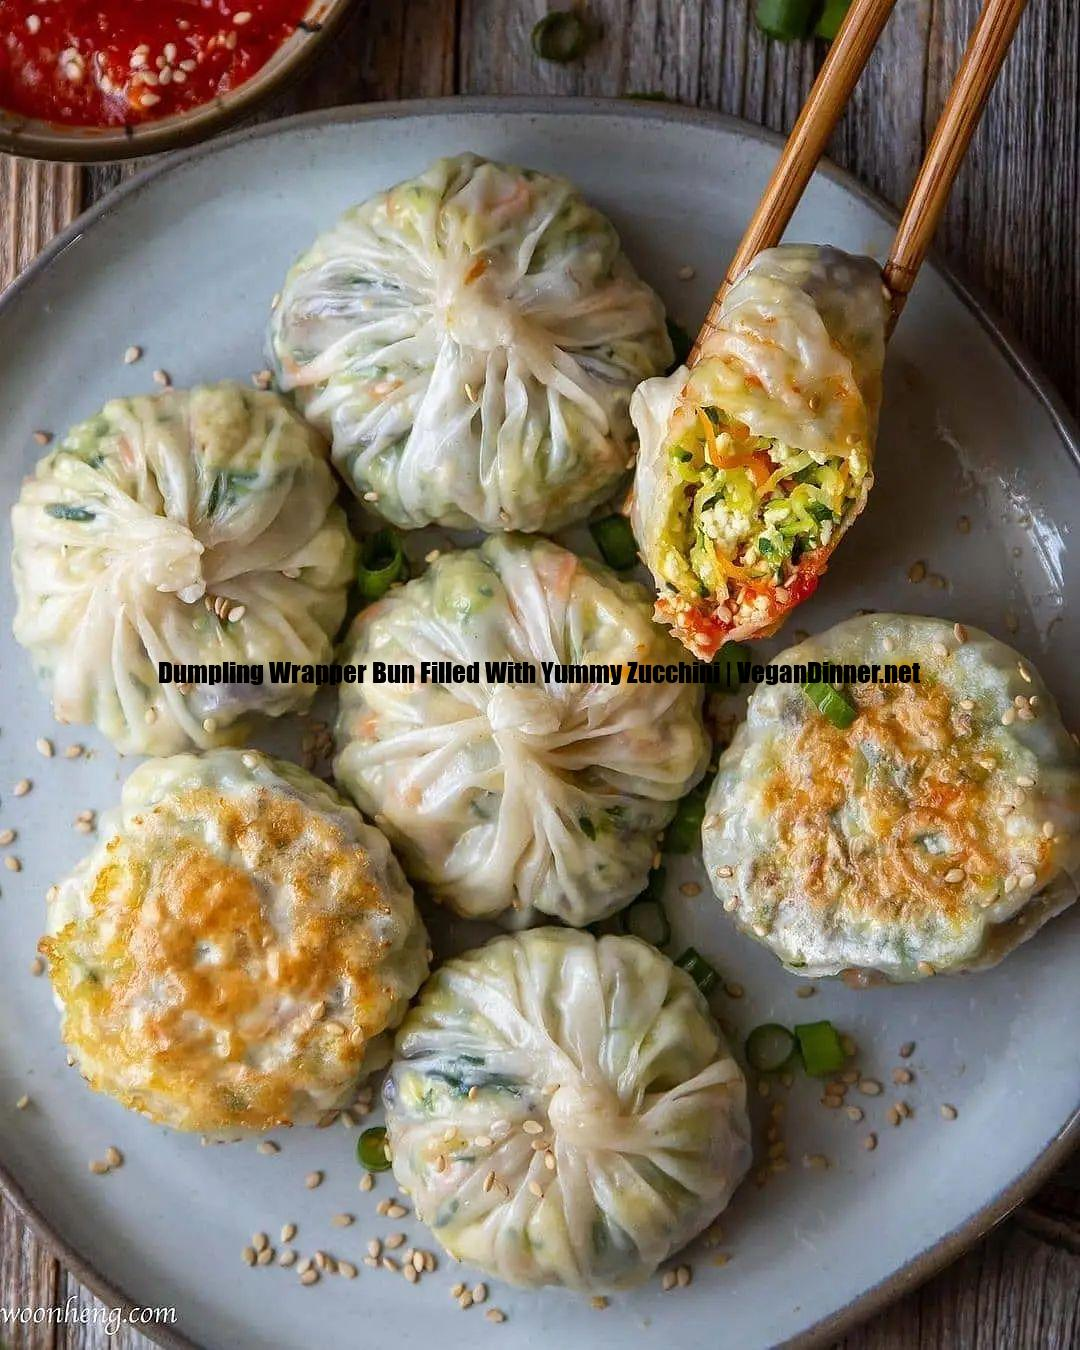 dumpling wrapper bun filled with yummy zucchini display image ad